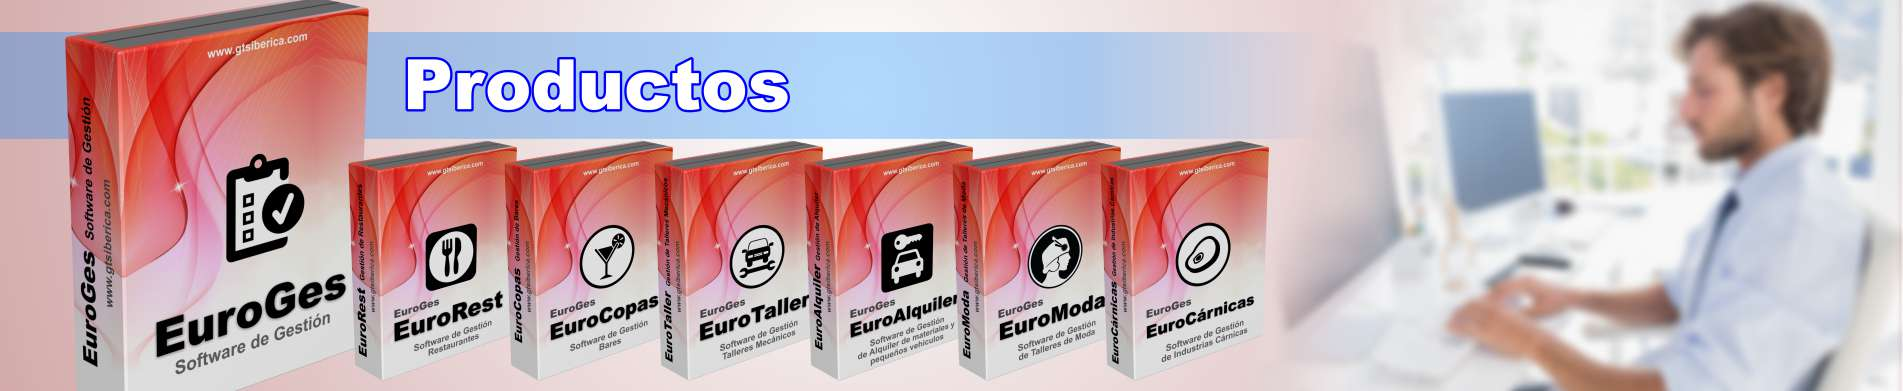 productos euroges